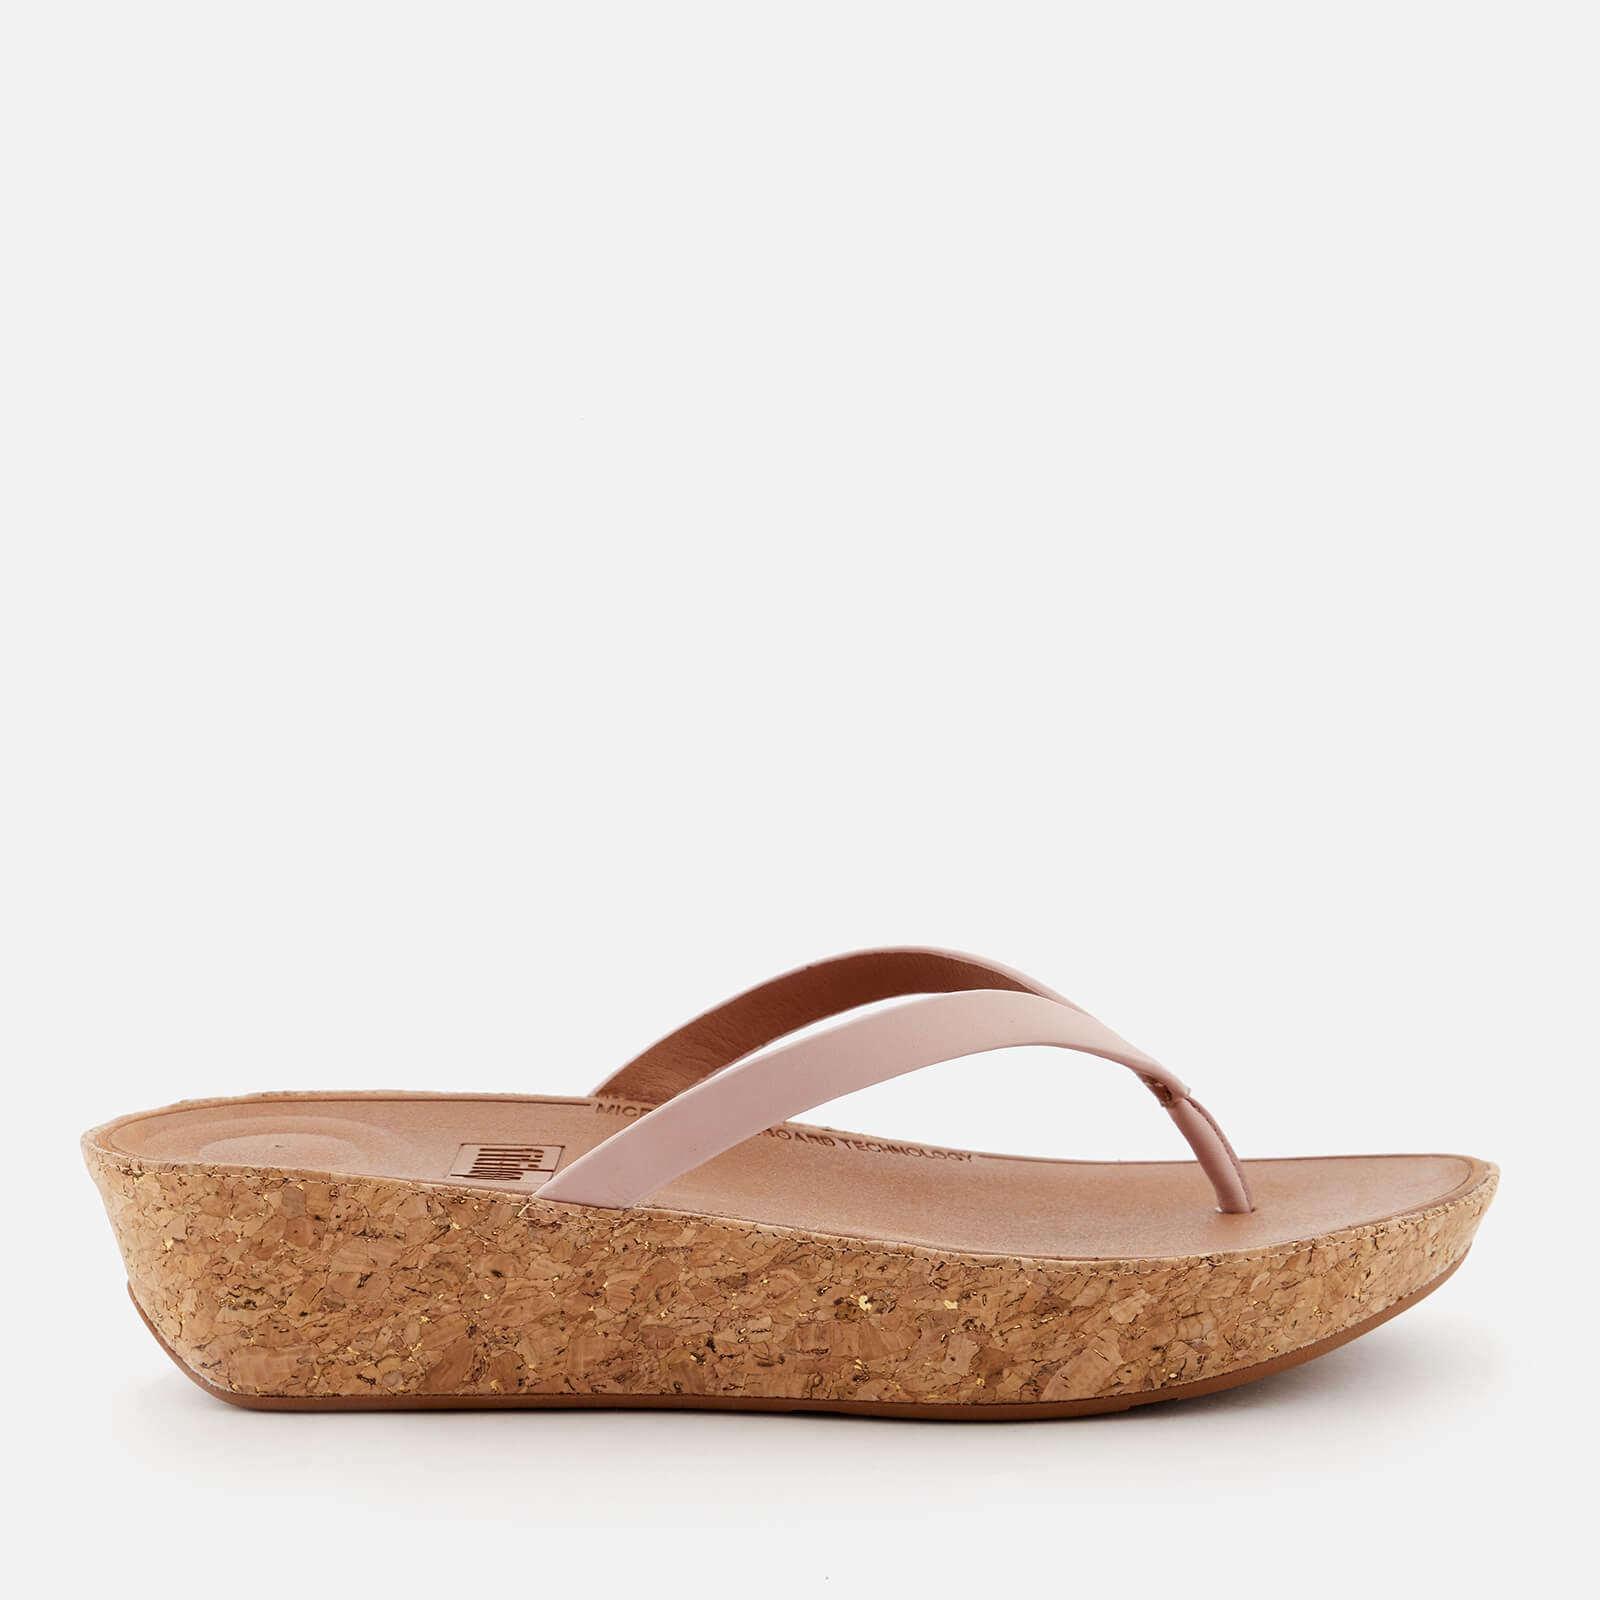 64fa00dfe69a Lyst - Fitflop Linny Wedged Toe Post Sandals in Pink